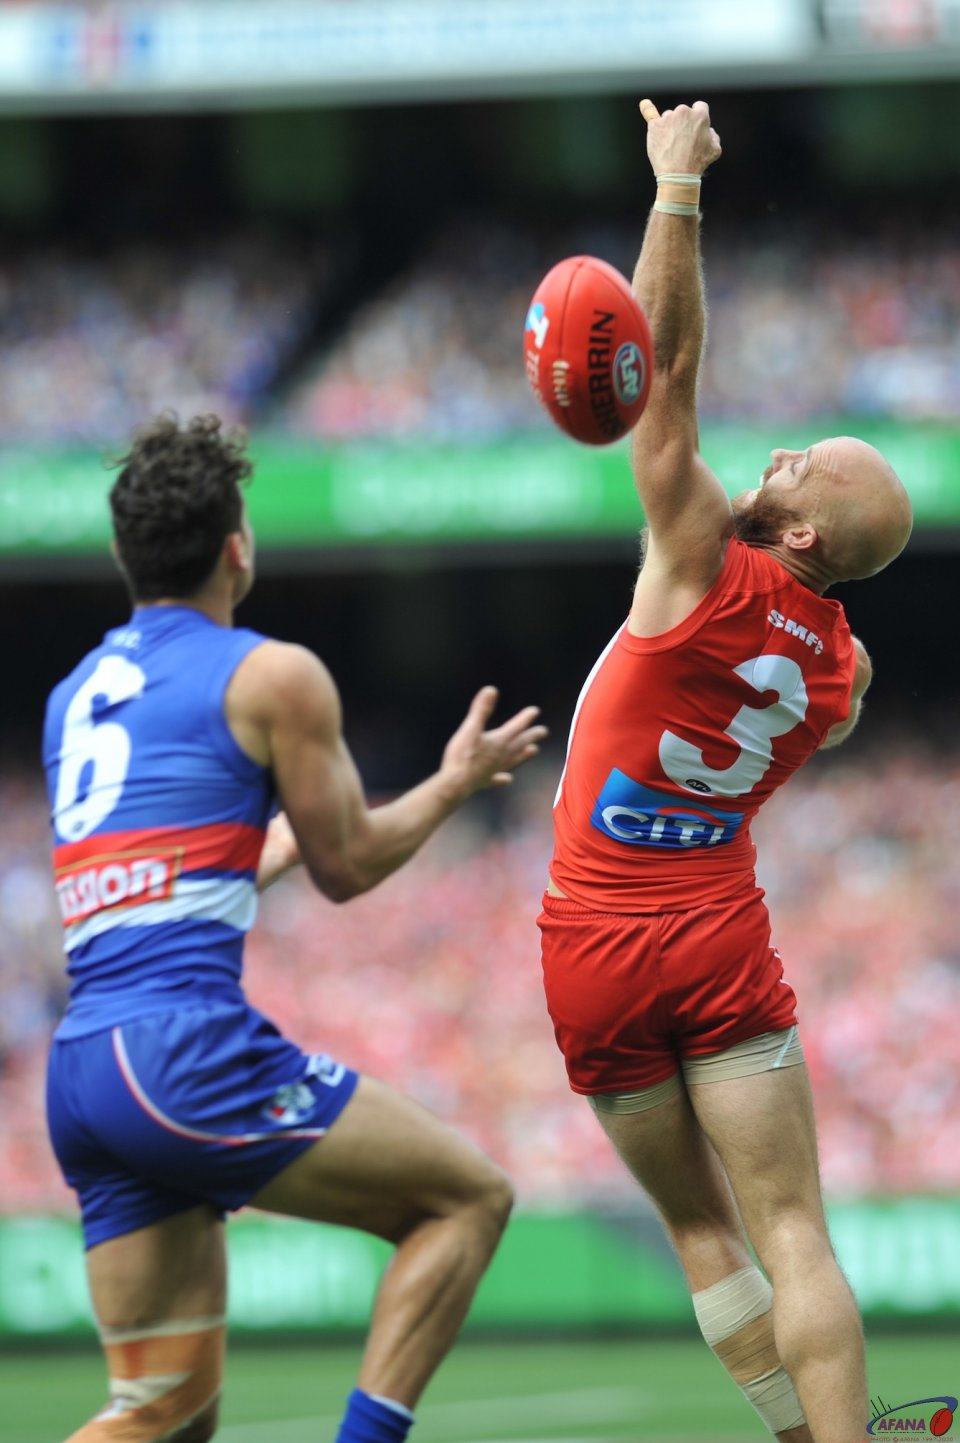 Dahlhaus marks the prefrectly weighted ball as McVeigh is unable to spoil